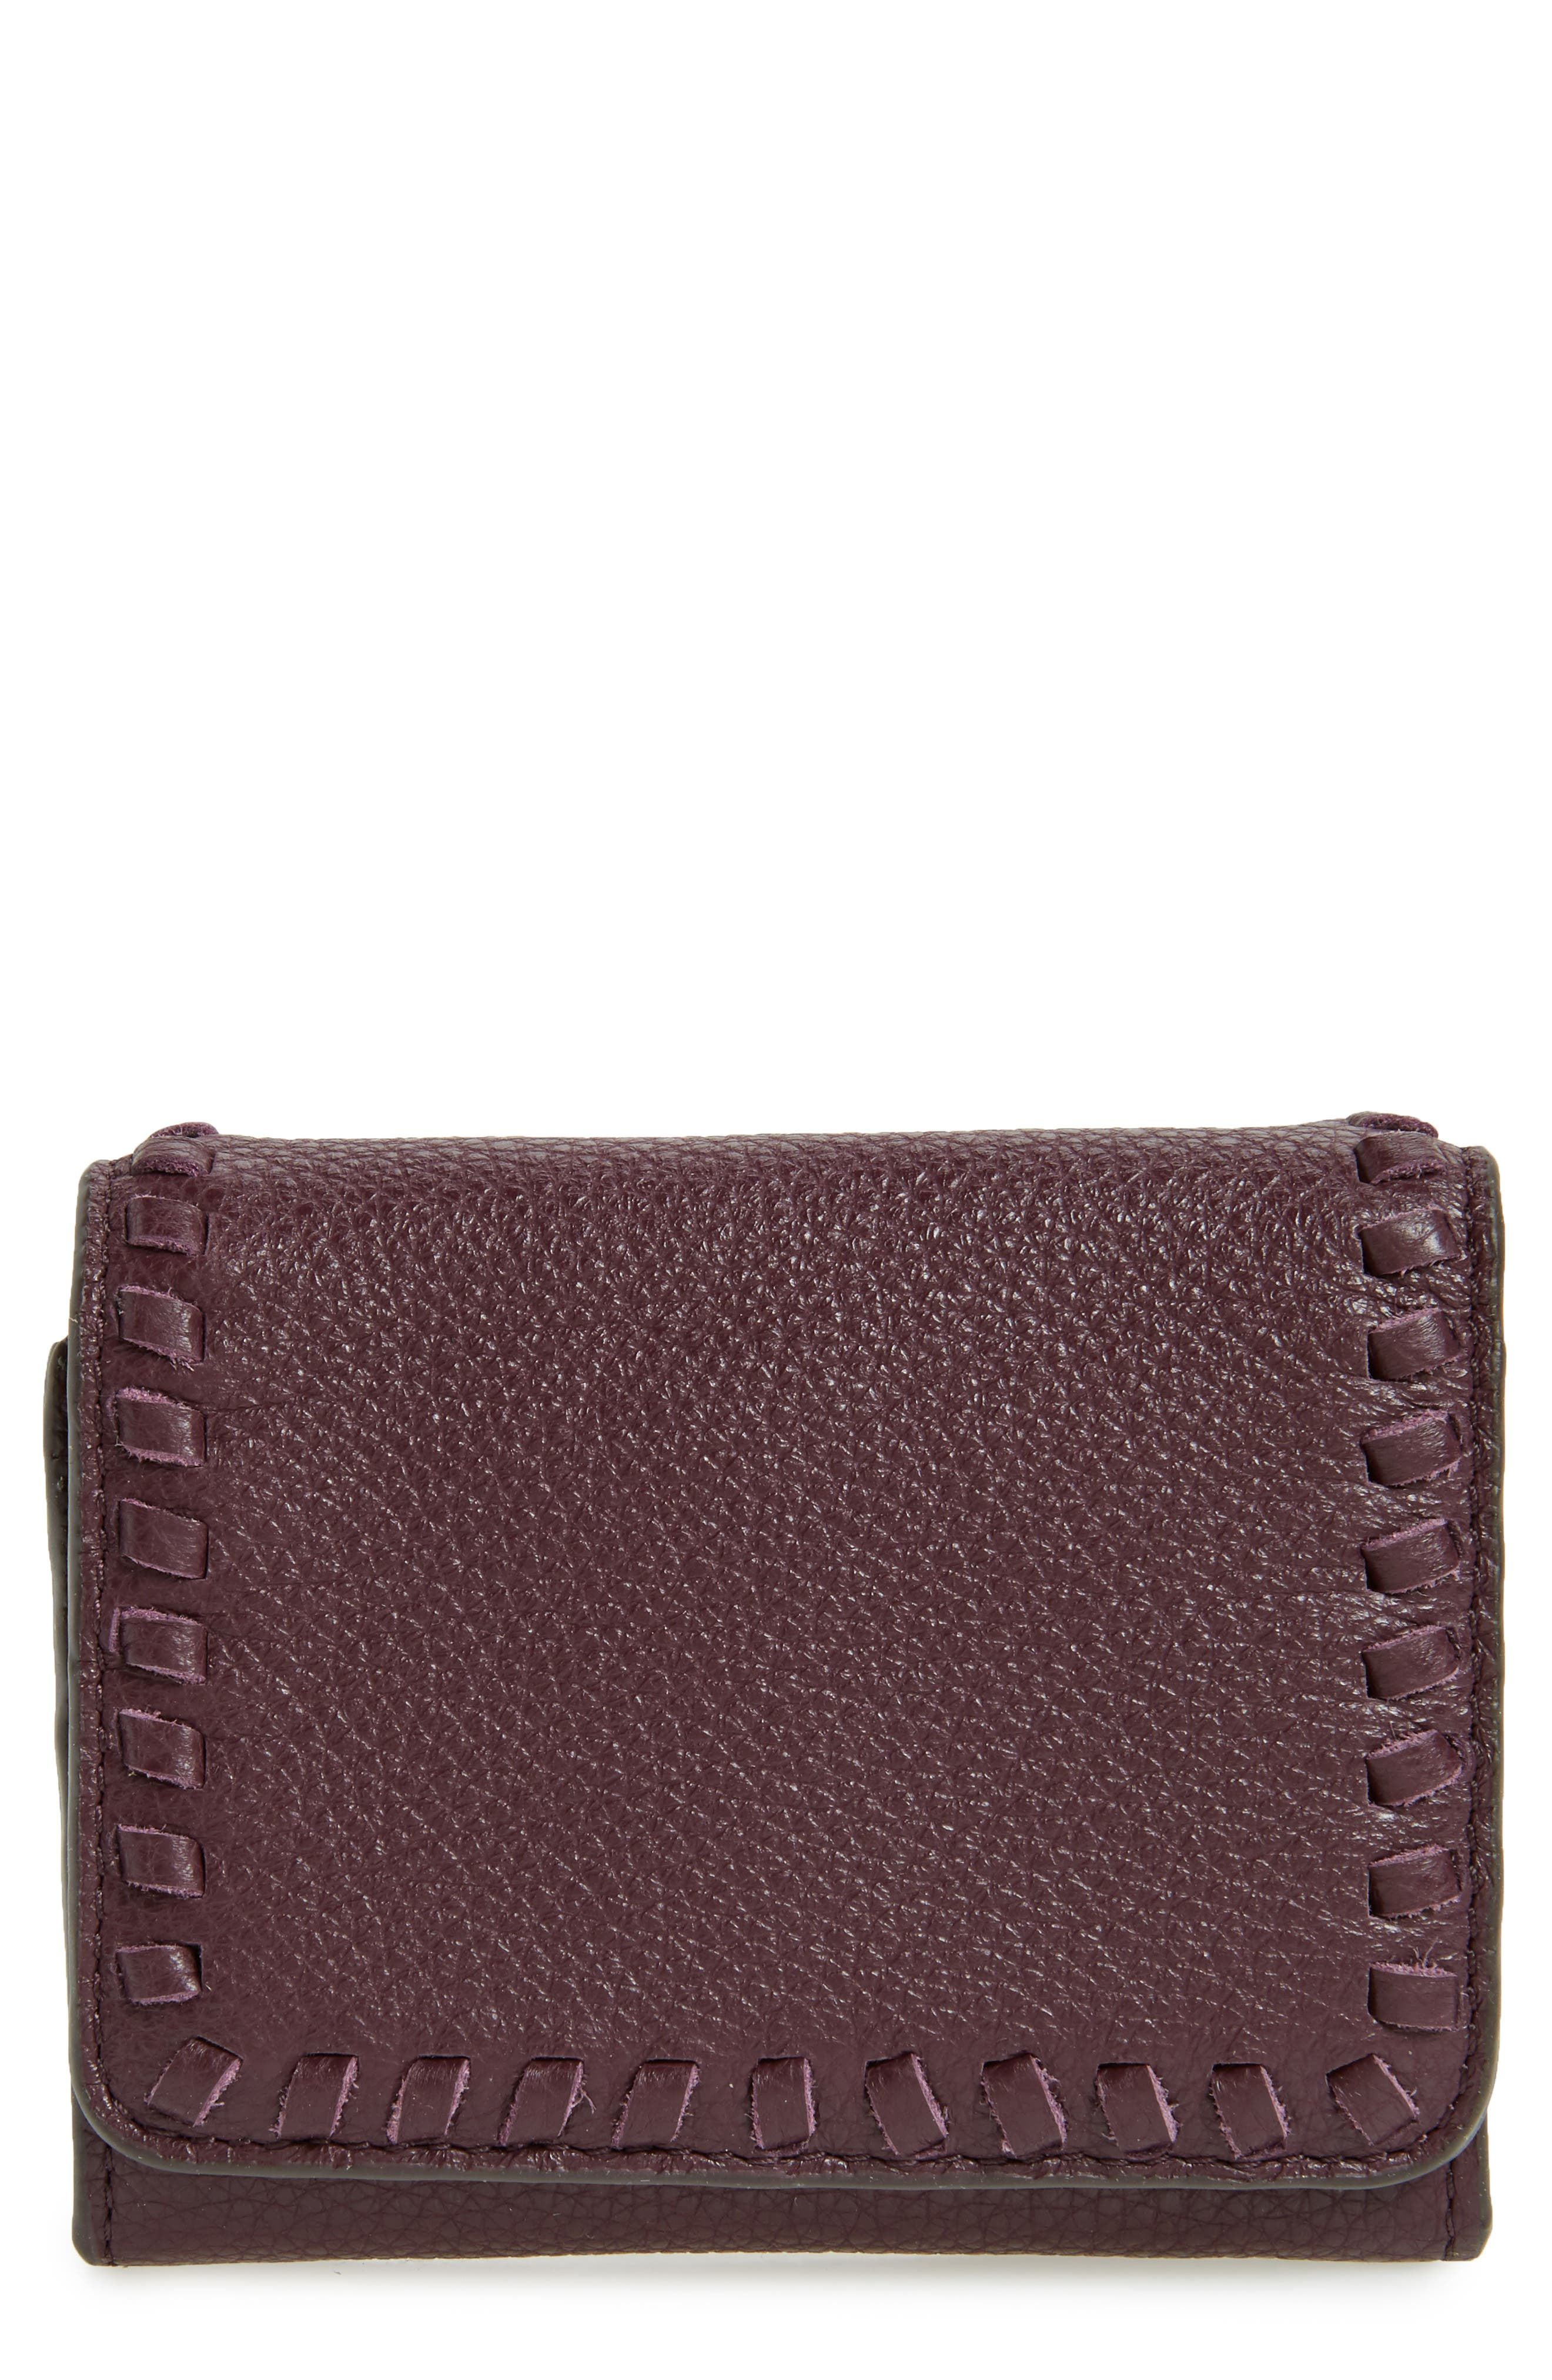 Rebecca Minkoff Mini Vanity Leather Wallet